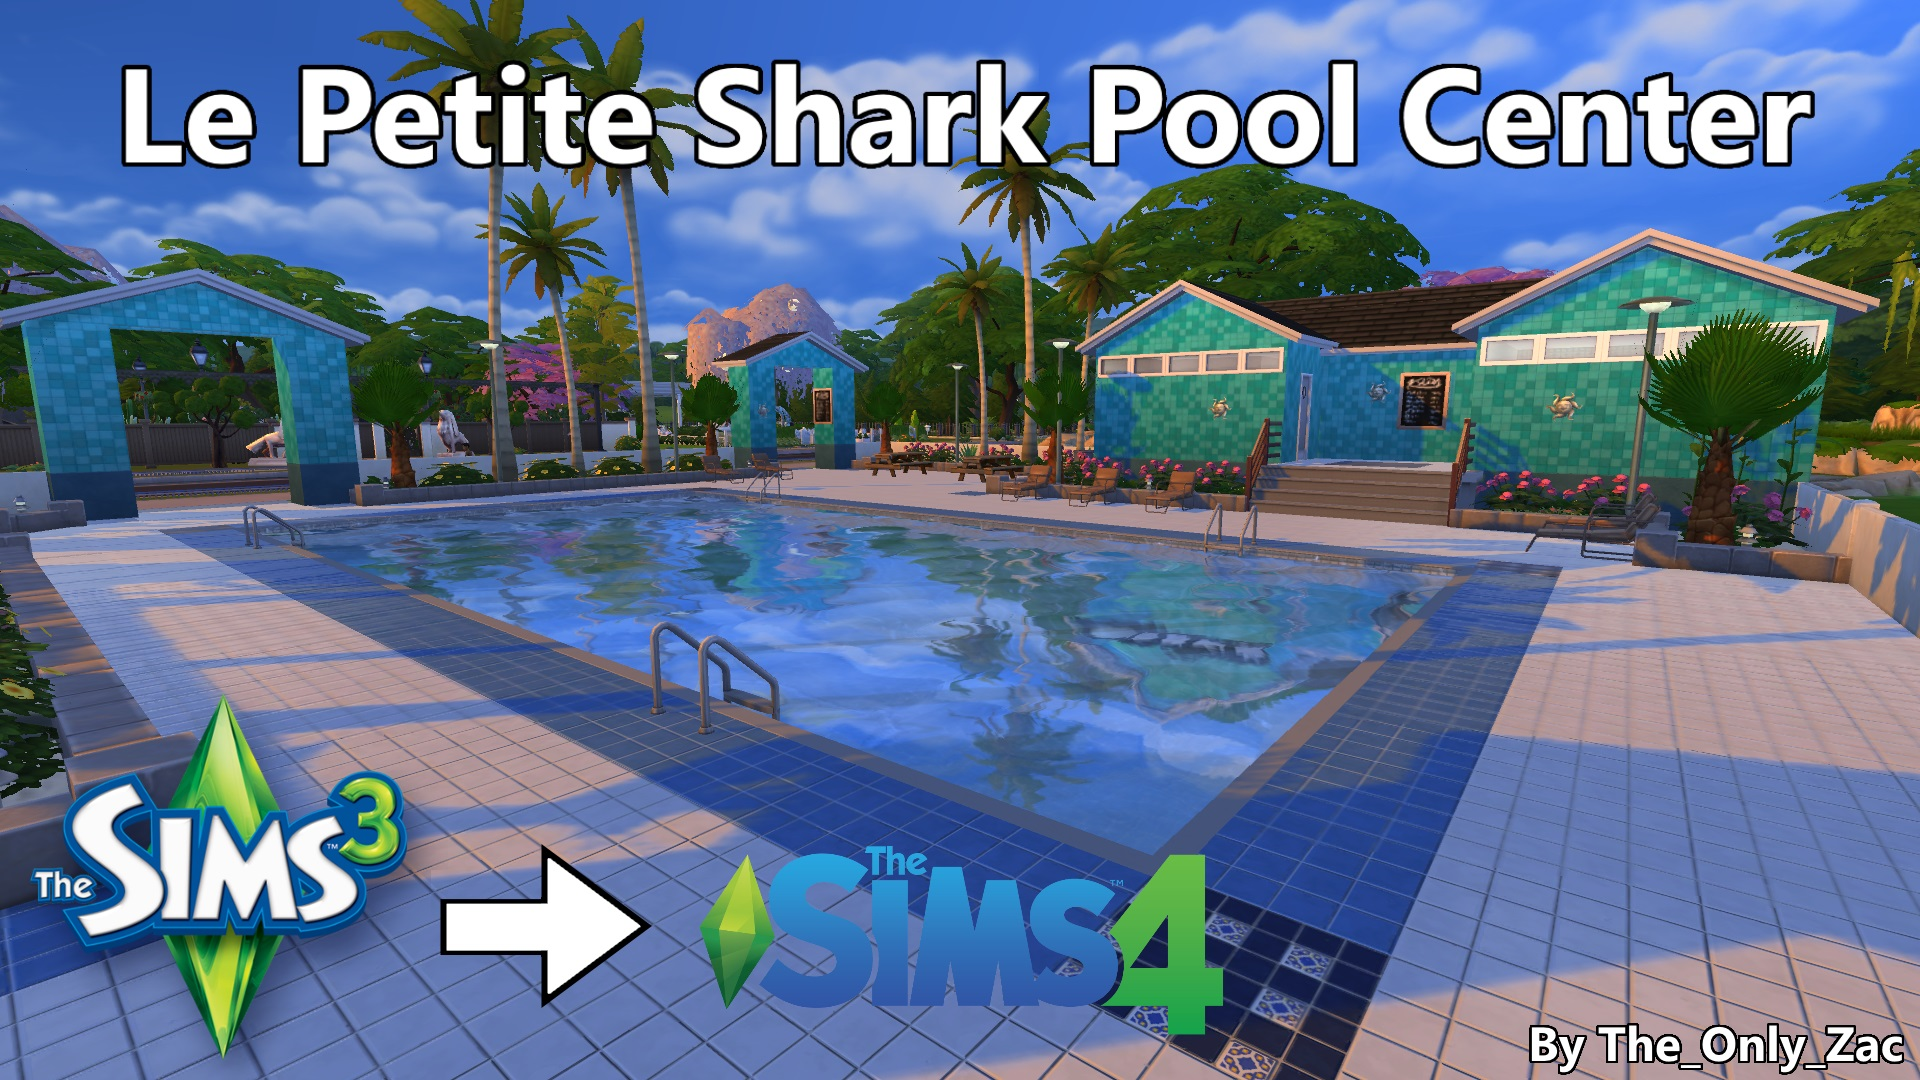 Mod the sims le petite shark pool center ts3 to ts4 for Pool designs sims 4